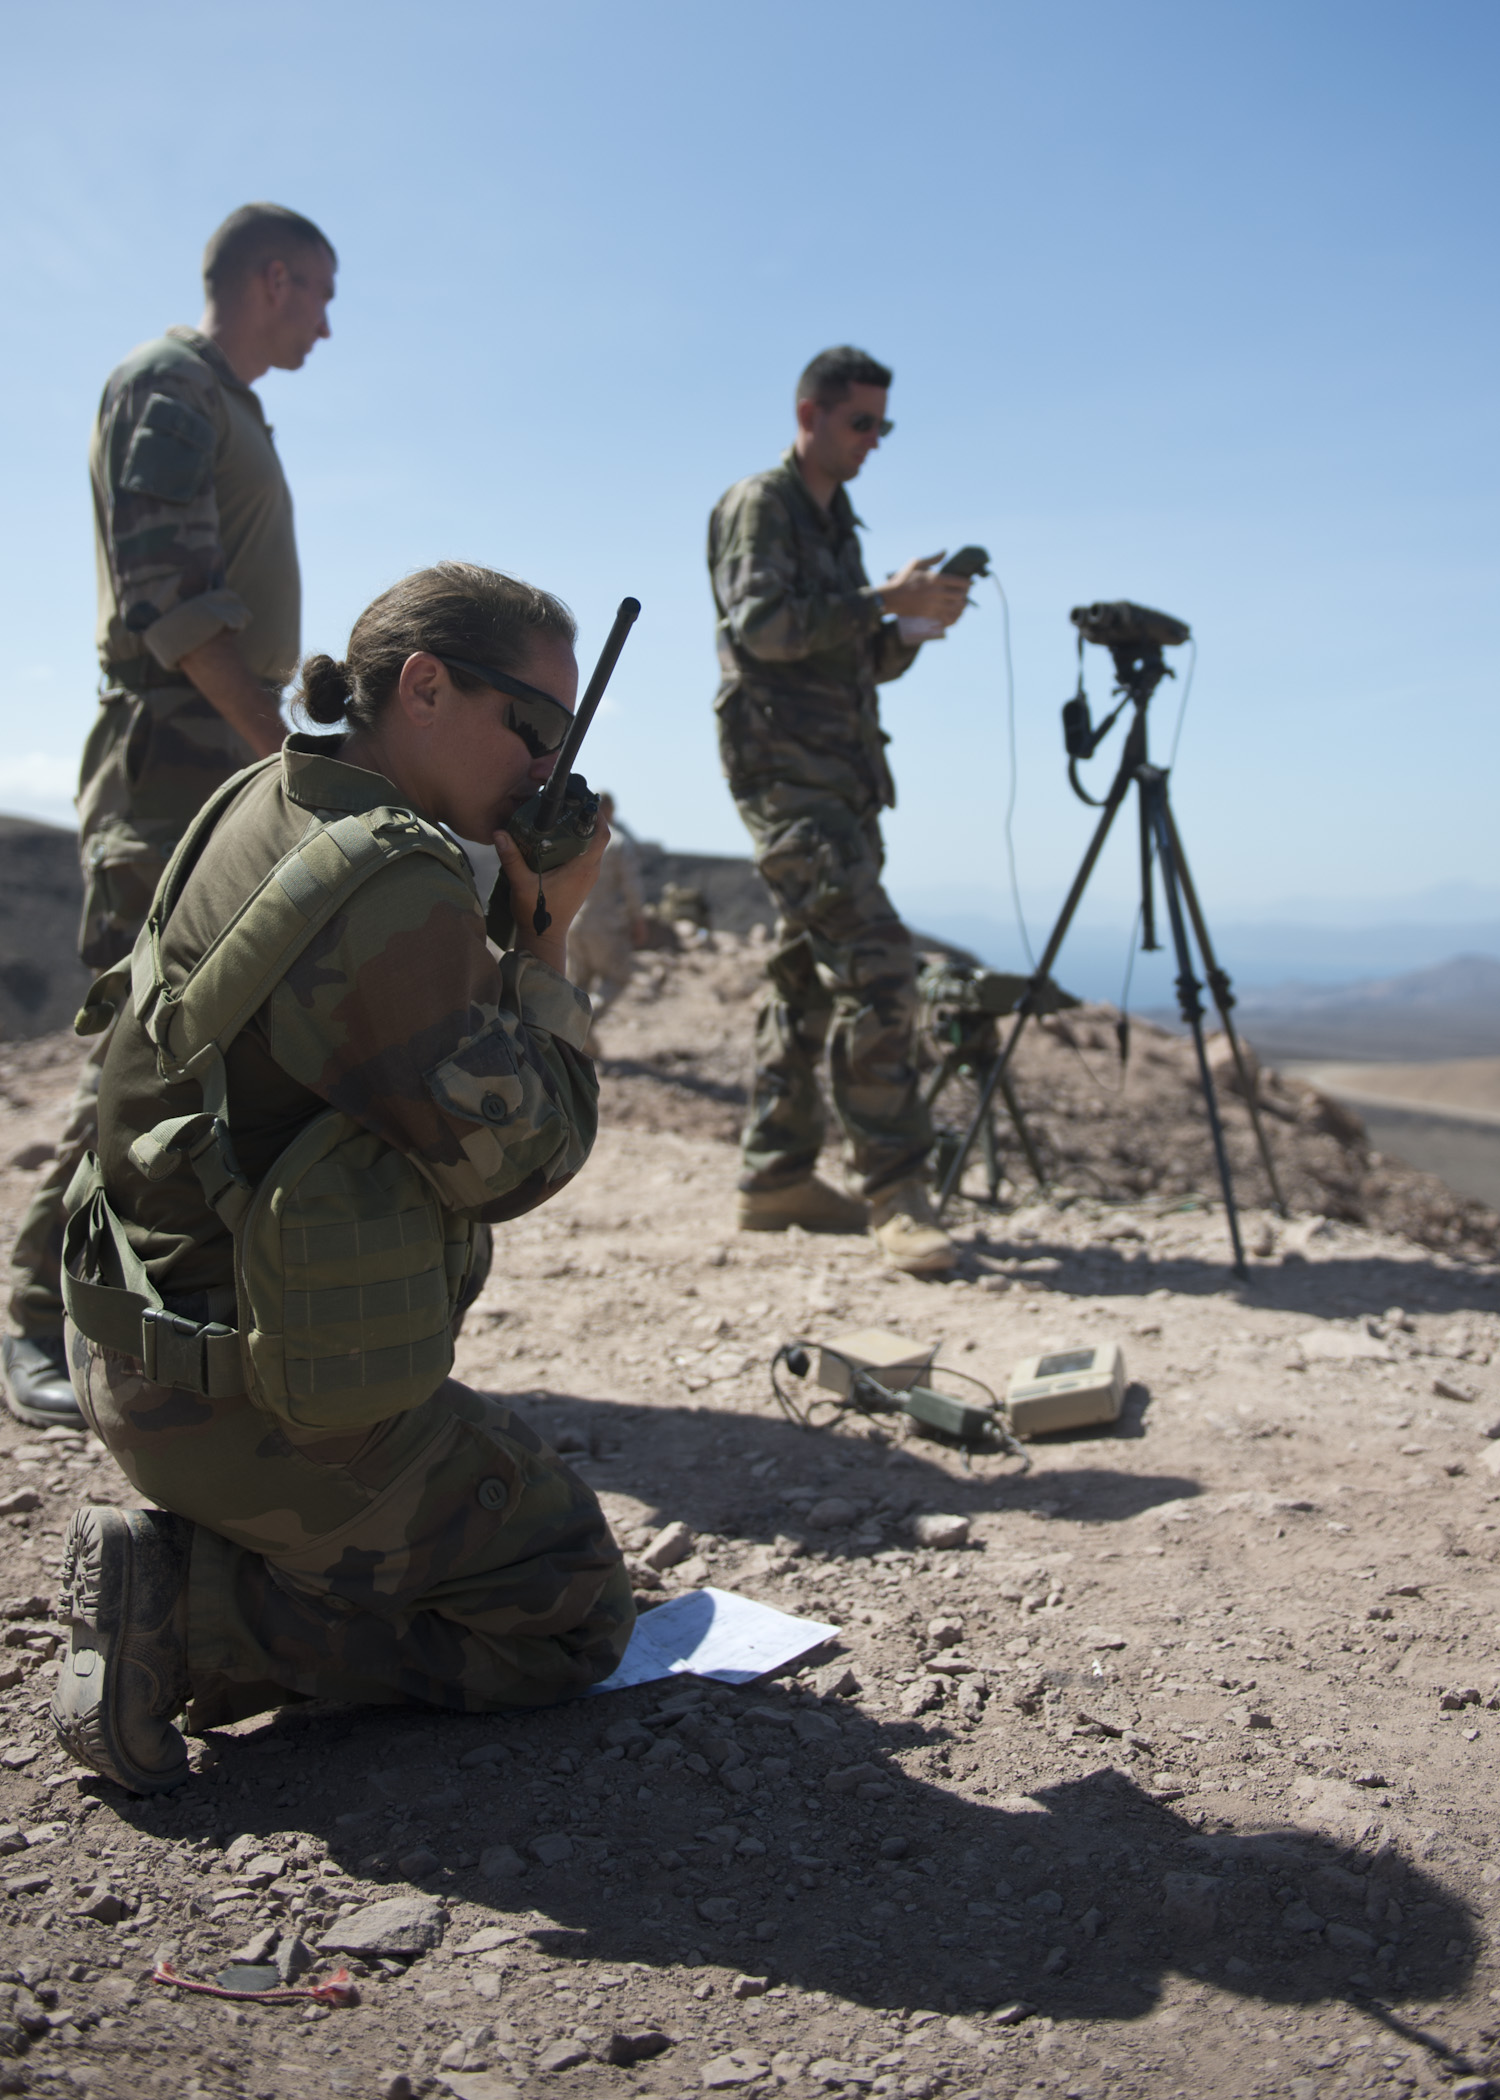 French 3rd Maine Artillery Regiment members provide over watch during a bilateral close air support training exercise in Arta, Djibouti, Feb. 4, 2015. The event was part of a scheduled bilateral CAS exercise between a contingent of 24th Marine Expeditionary Unit Marines and French soldiers and sailors. (U.S. Air Force photo by Staff Sgt. Kevin Iinuma)